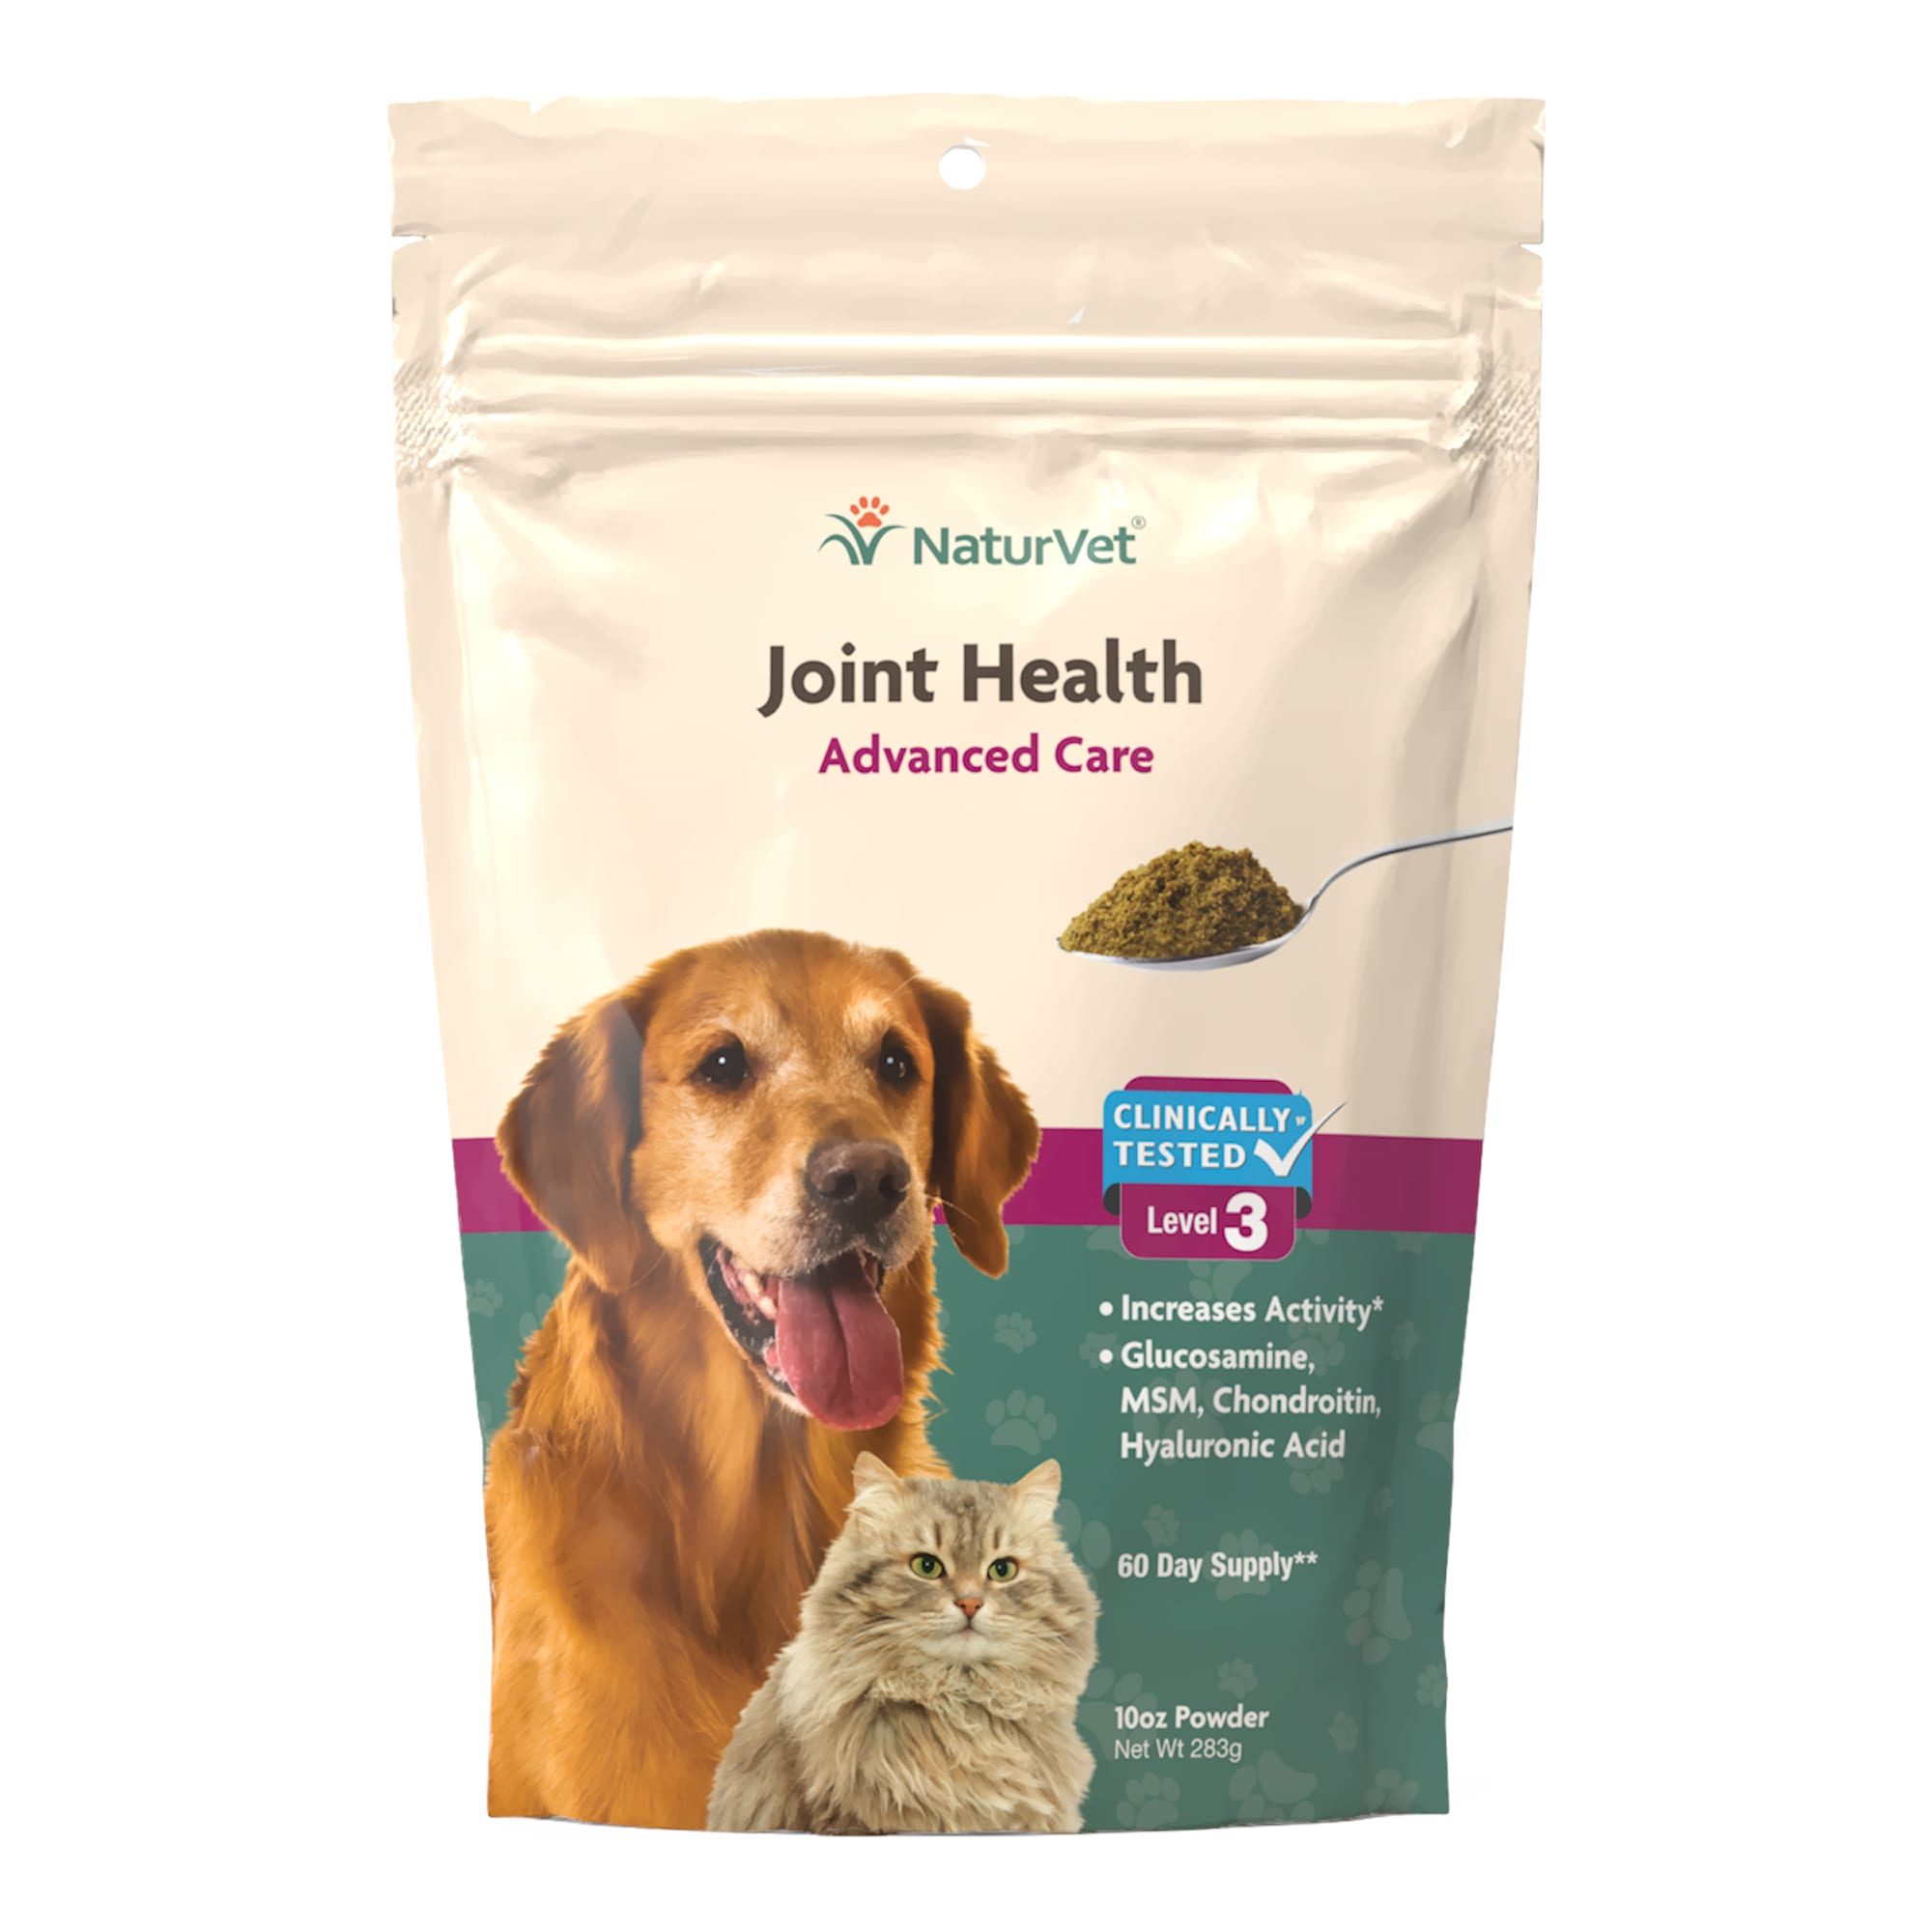 NaturVet Naturals Joint Health Level 3 Dog & Cat Advanced Joint Support Supplement